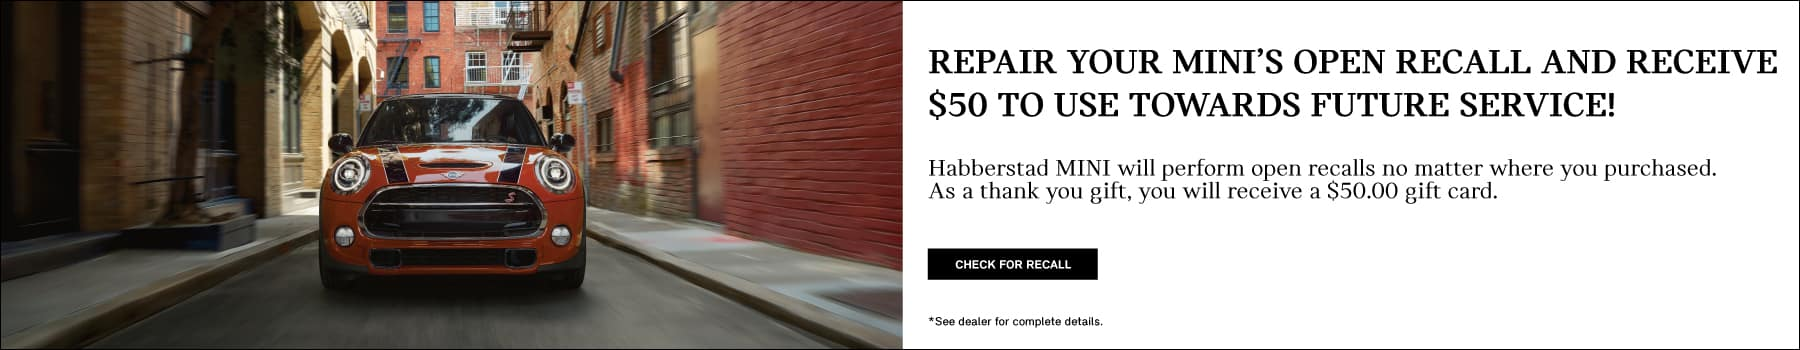 REPAIR YOUR MINI'S OPEN RECALL AND RECEIVE $50 TO USE TOWARDS FUTURE SERVICE. Habberstad MINI will perform open recalls no matter where you purchased. As a thank you gift, you will receive a $50,00 gift card.